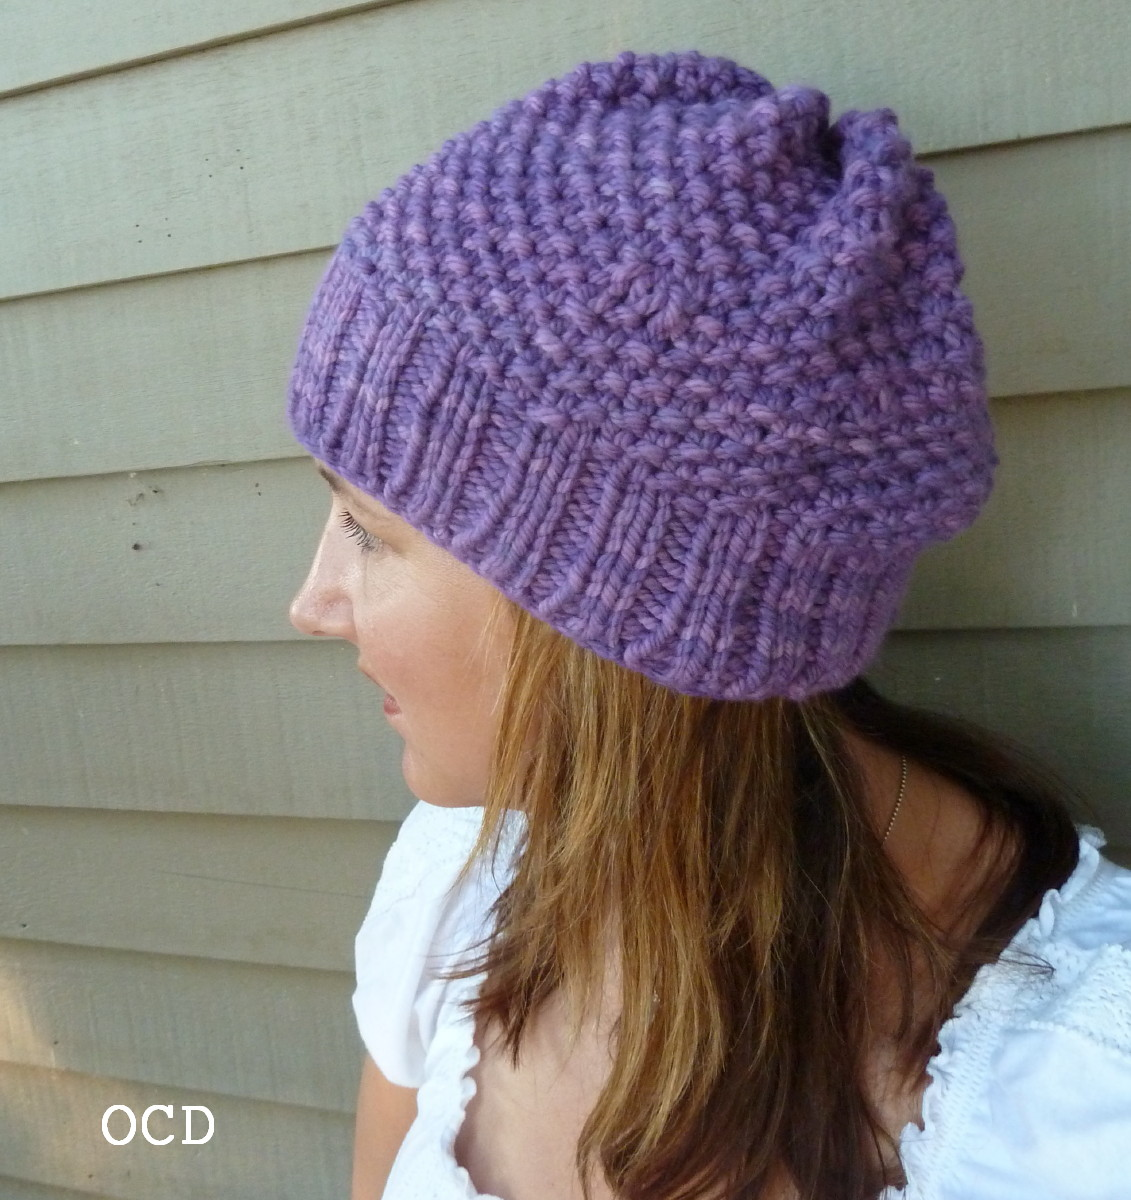 ocd: obsessive crafting disorder: Knitting conquests and WIPs